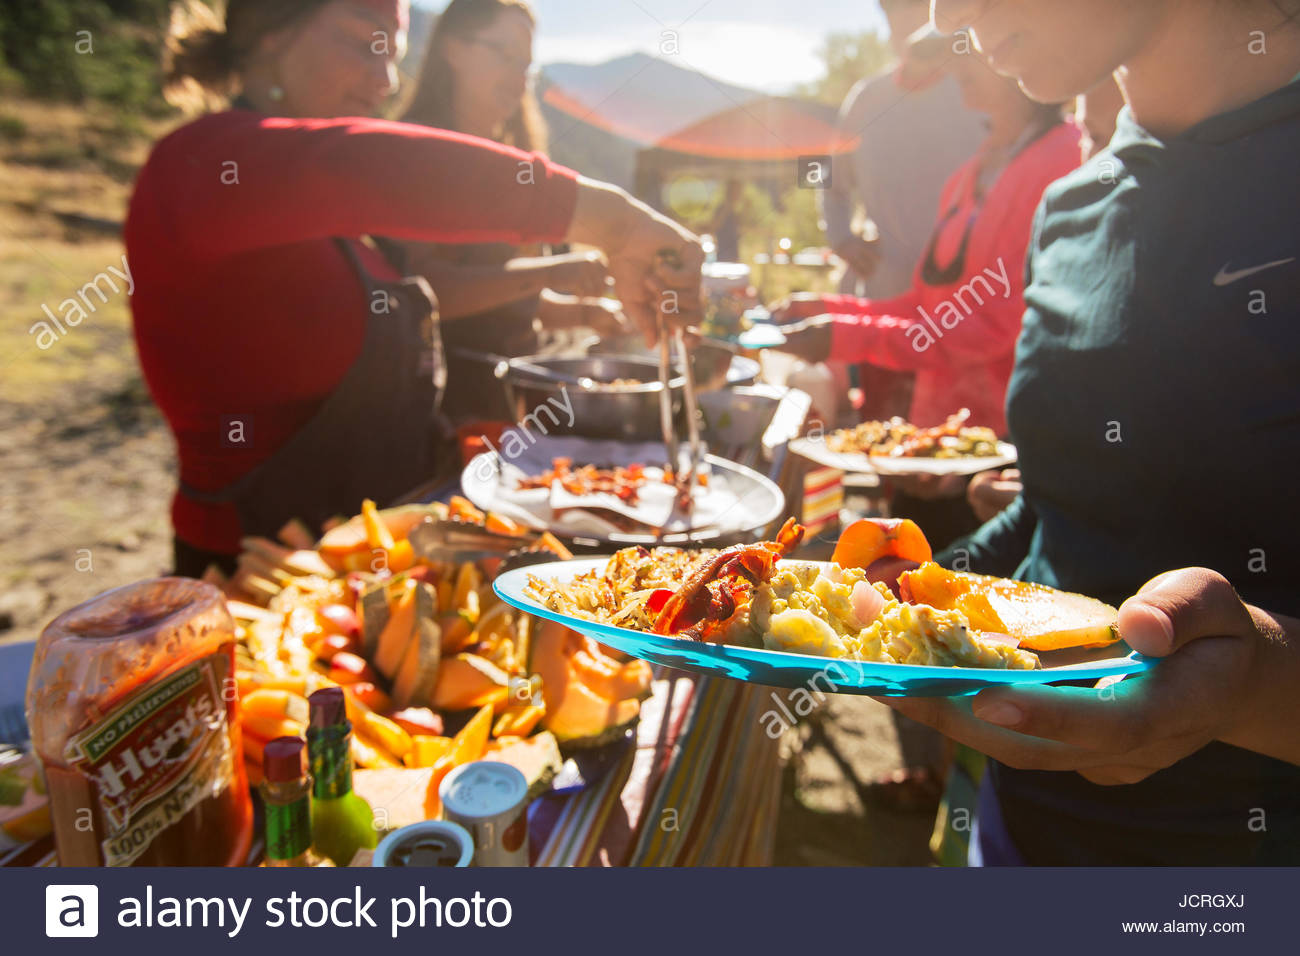 A hearty breakfast  served to rafters at camp in the Wild Rogue Wilderness. Editorial Use Only. - Stock Image